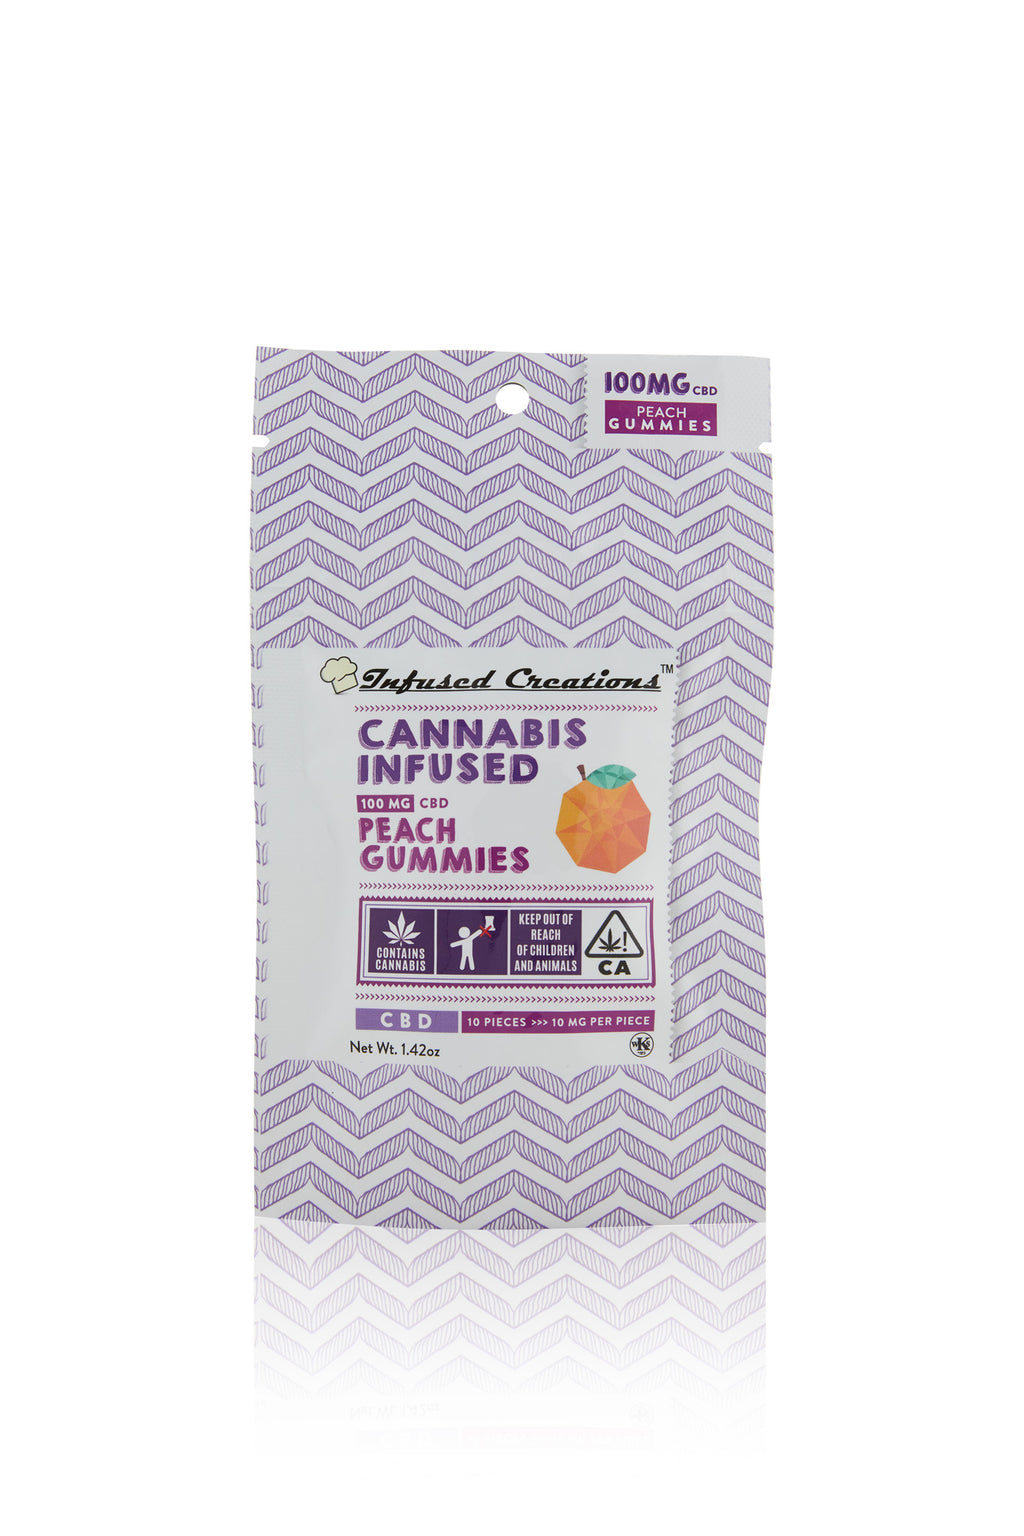 Peach CBD Gummies